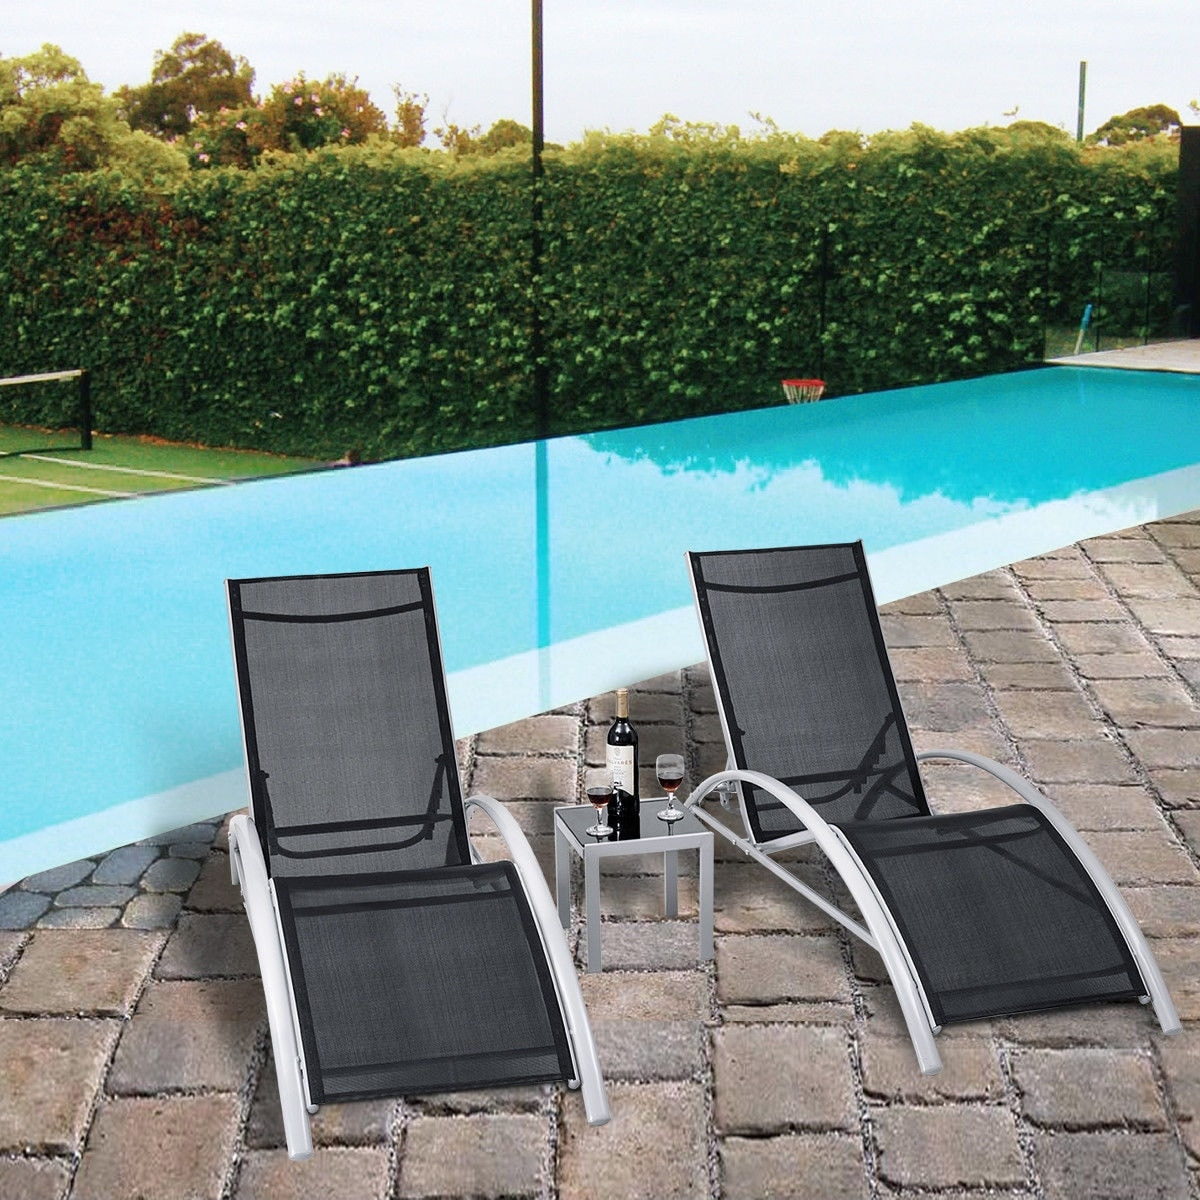 Patio Outdoor 3 Pcs Outdoor Patio Pool Lounger Set Reclining Garden Chairs Glass Table Black